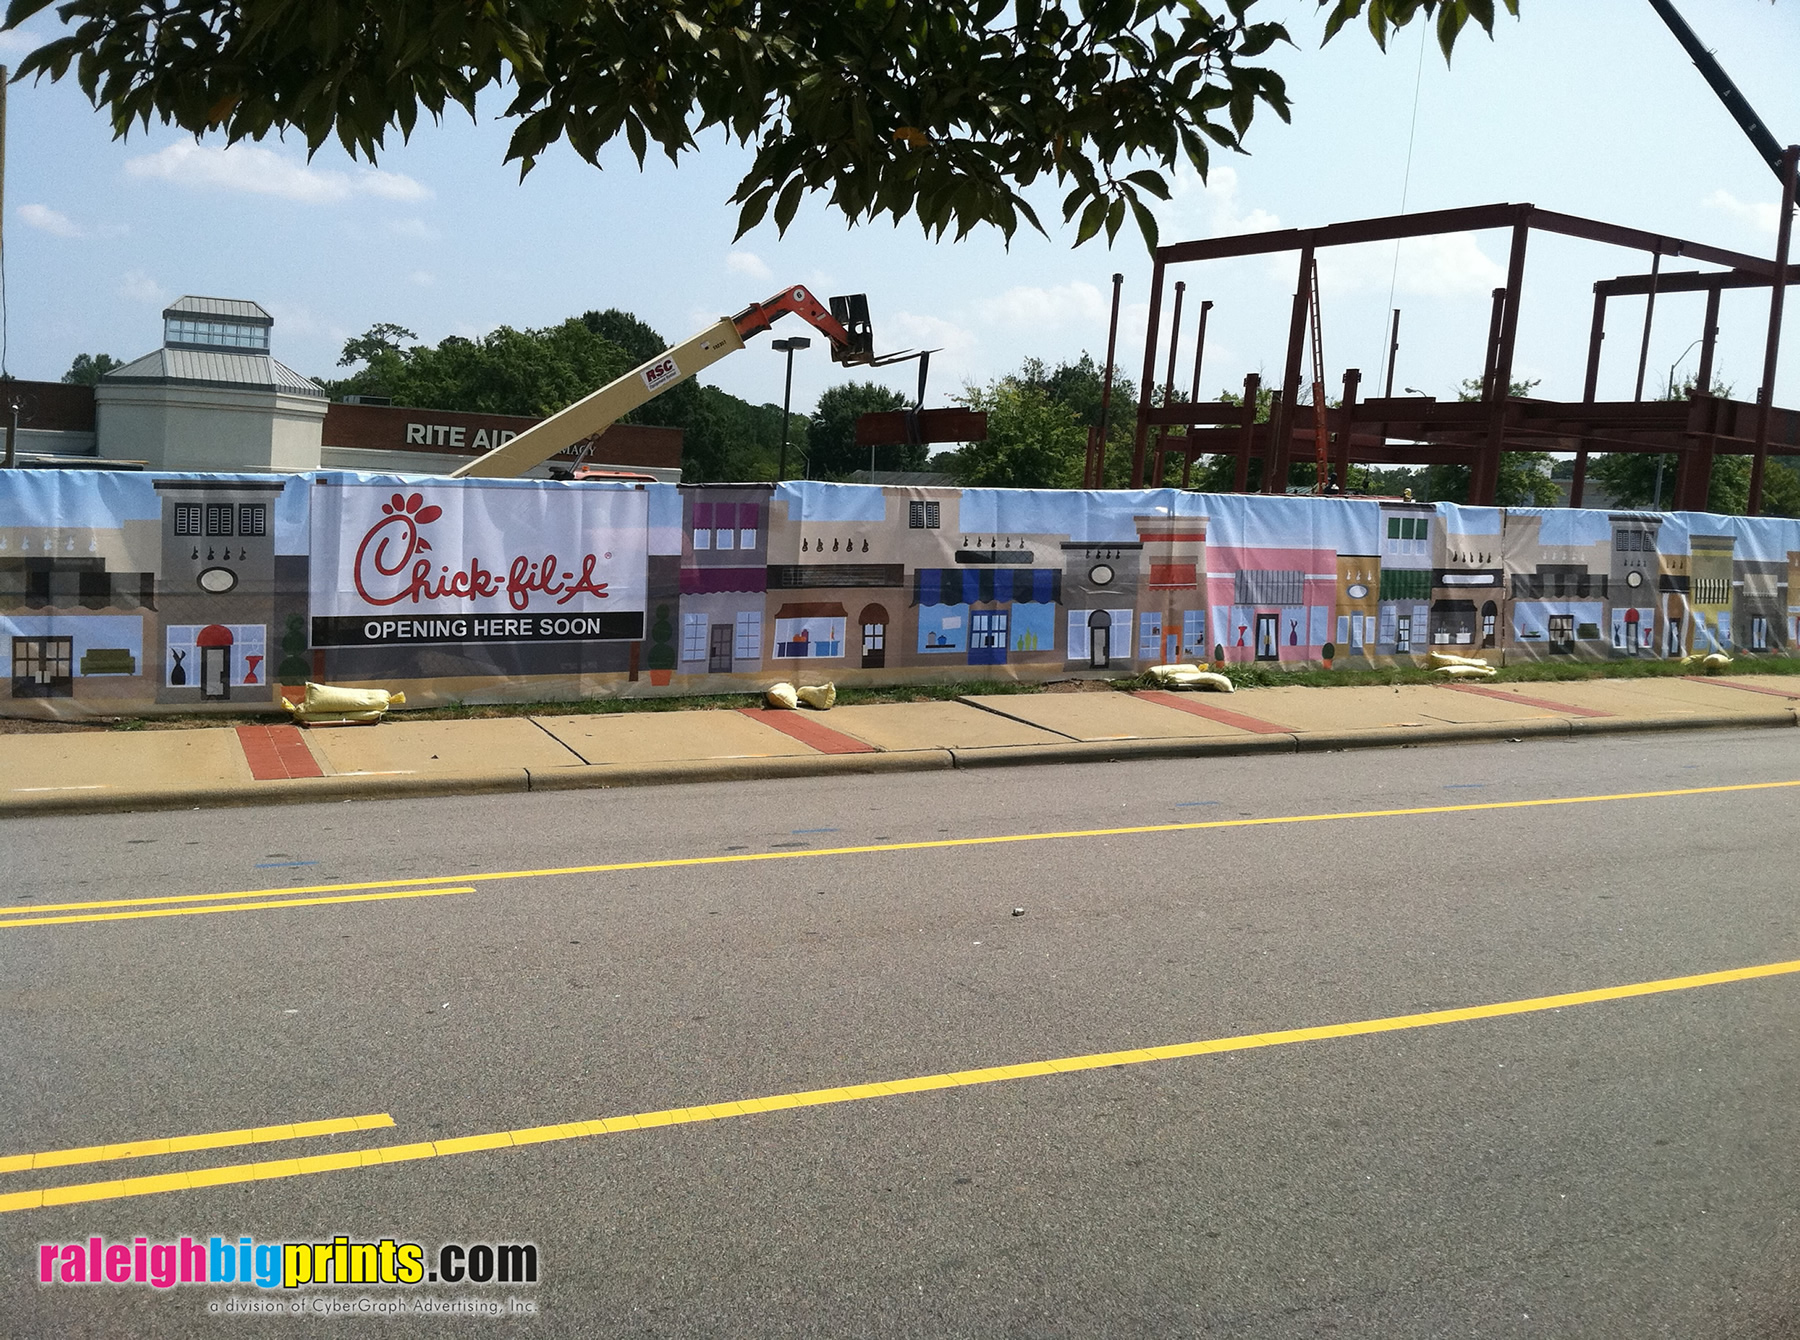 Construction Fence Mesh Banner - Raleigh Big Prints - Cameron Village Chick-fil-A